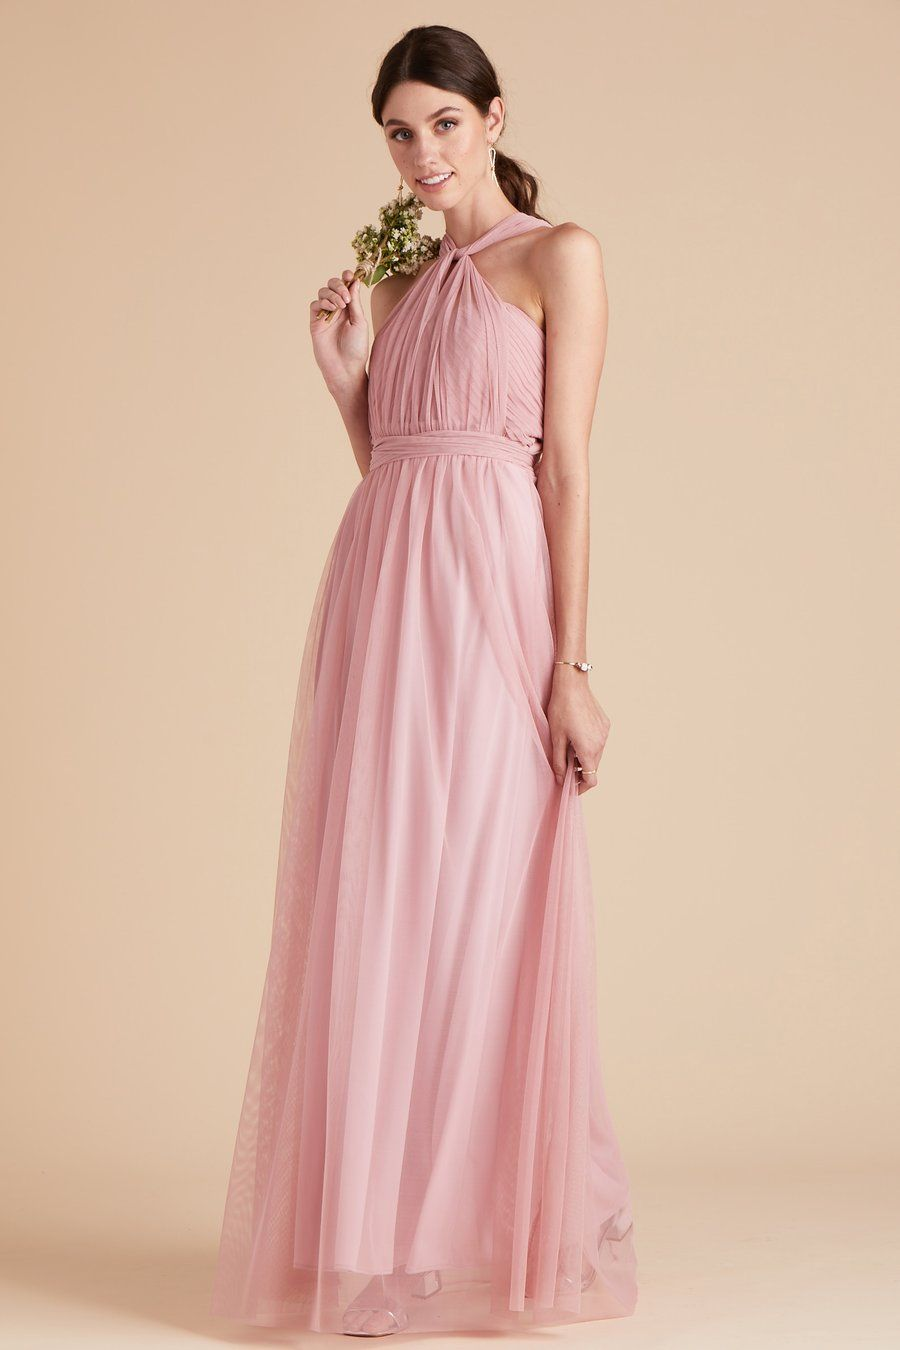 91aae418615 Christina Convertible Tulle Bridesmaid Dress in Dusty Rose